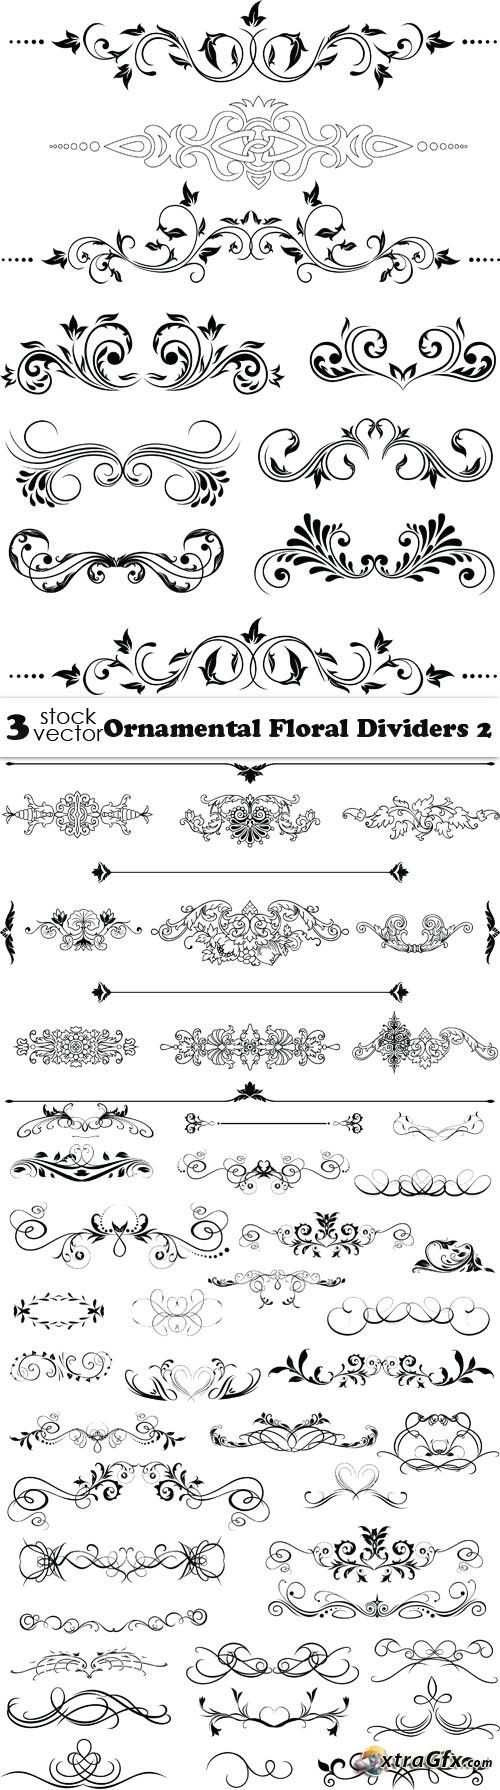 Vectors - Ornamental Floral Dividers 2